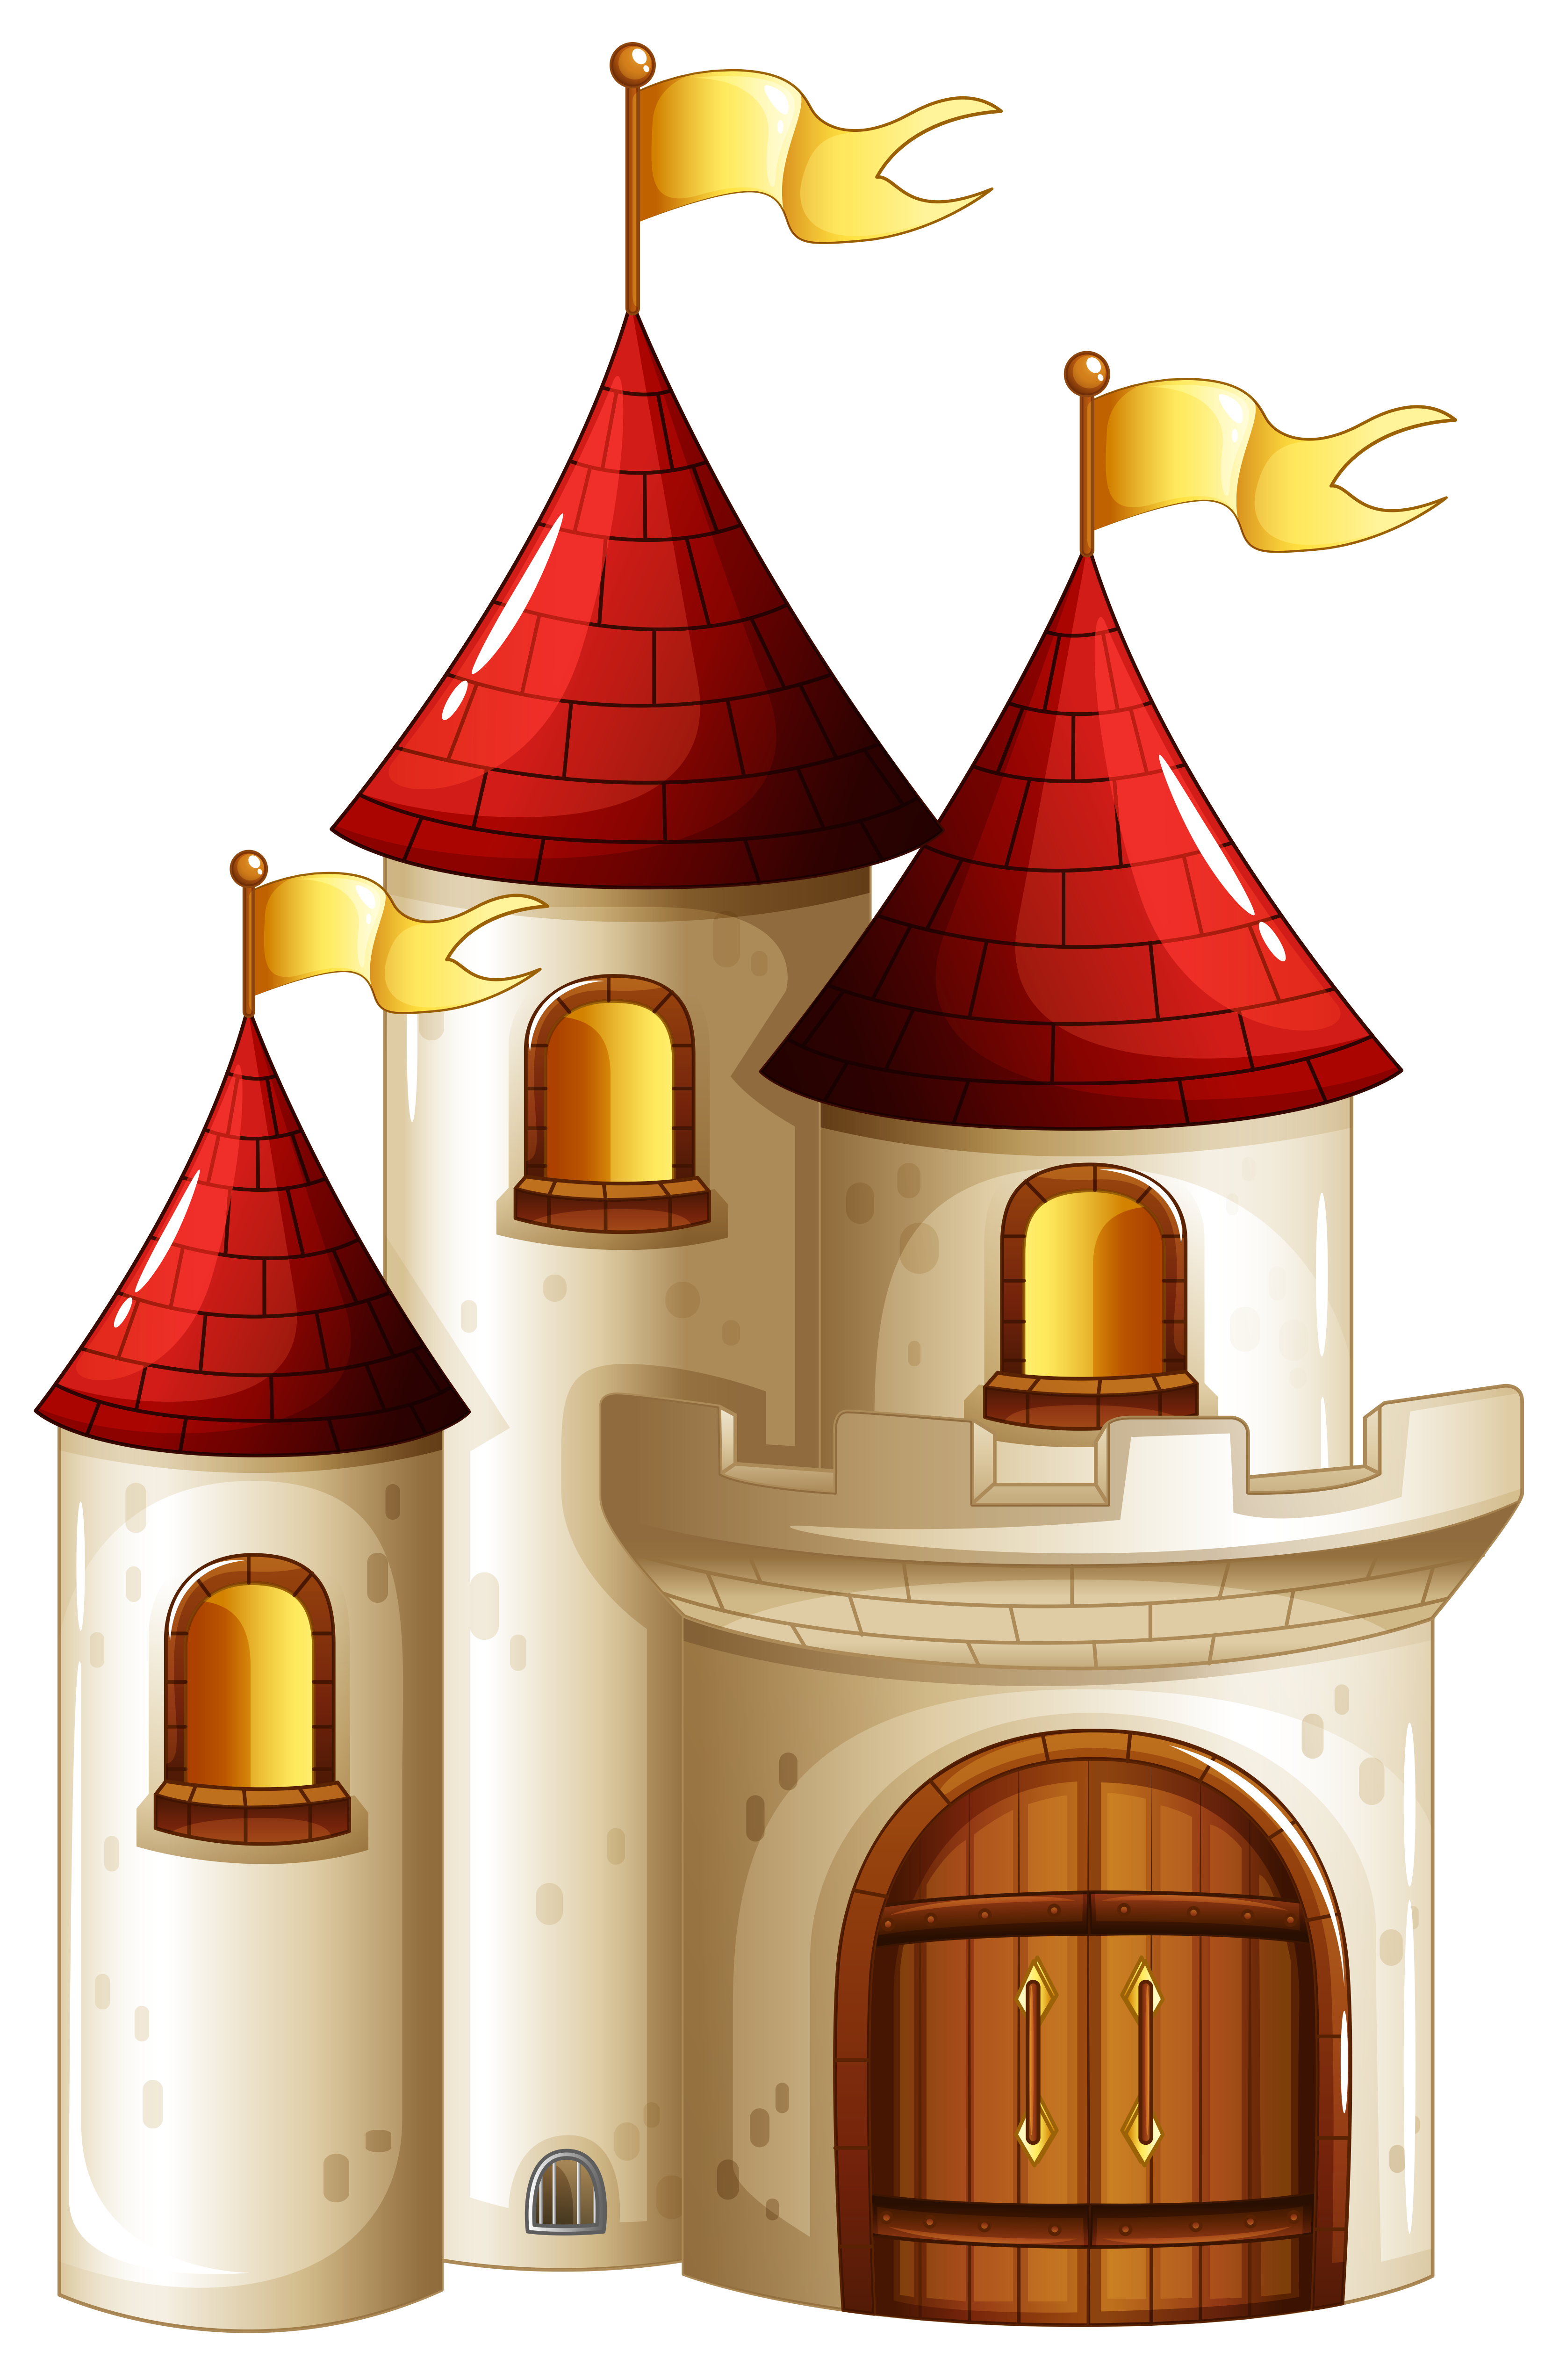 Clipart castle transparent background. Small png picture gallery